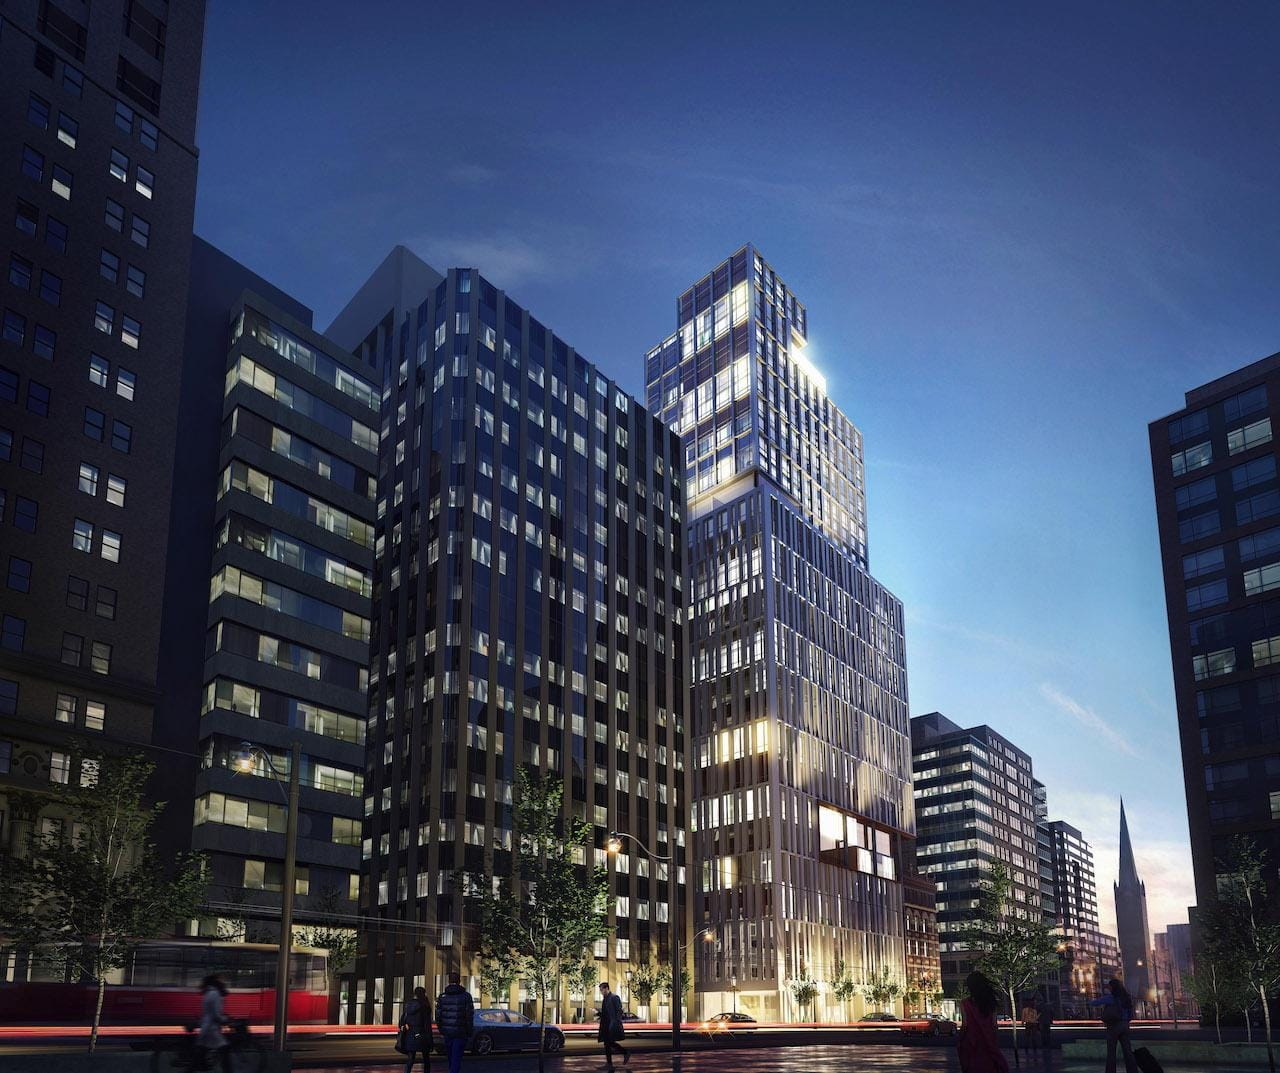 Full exterior rendering of 34 King Street East Condos and surrounding street area.